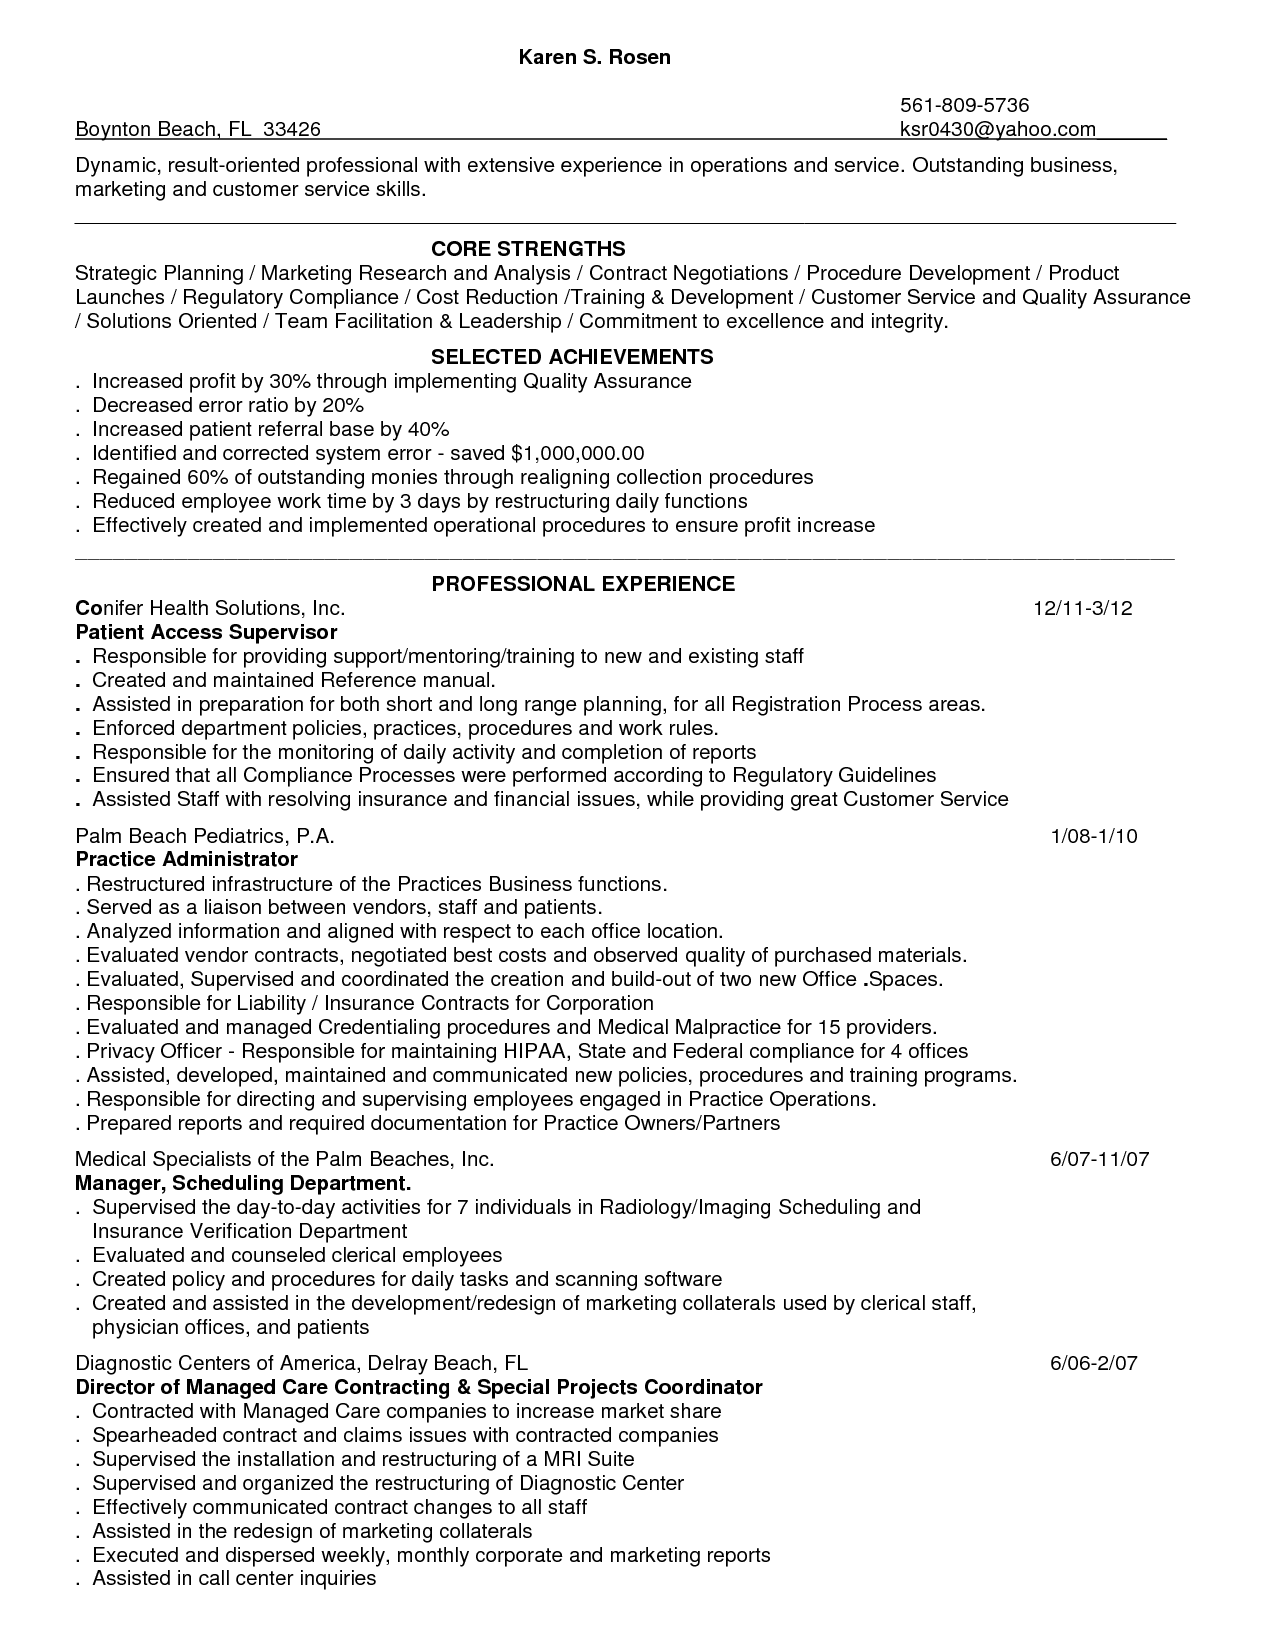 account representative resumes | Template